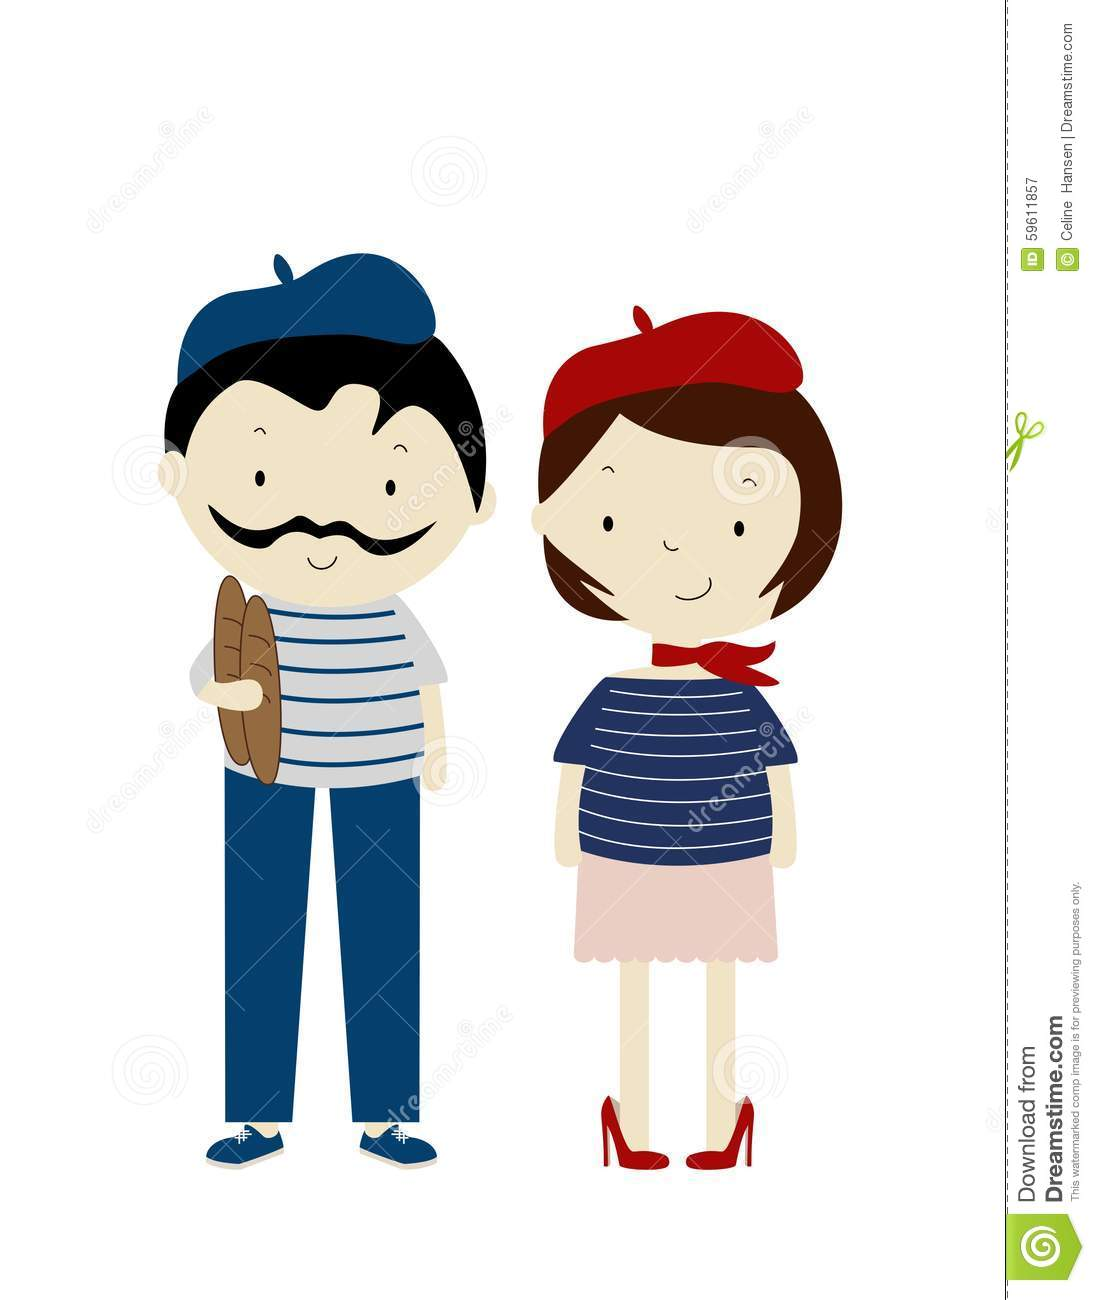 An illustration of a French stereotypical boy and girl, wearing berets